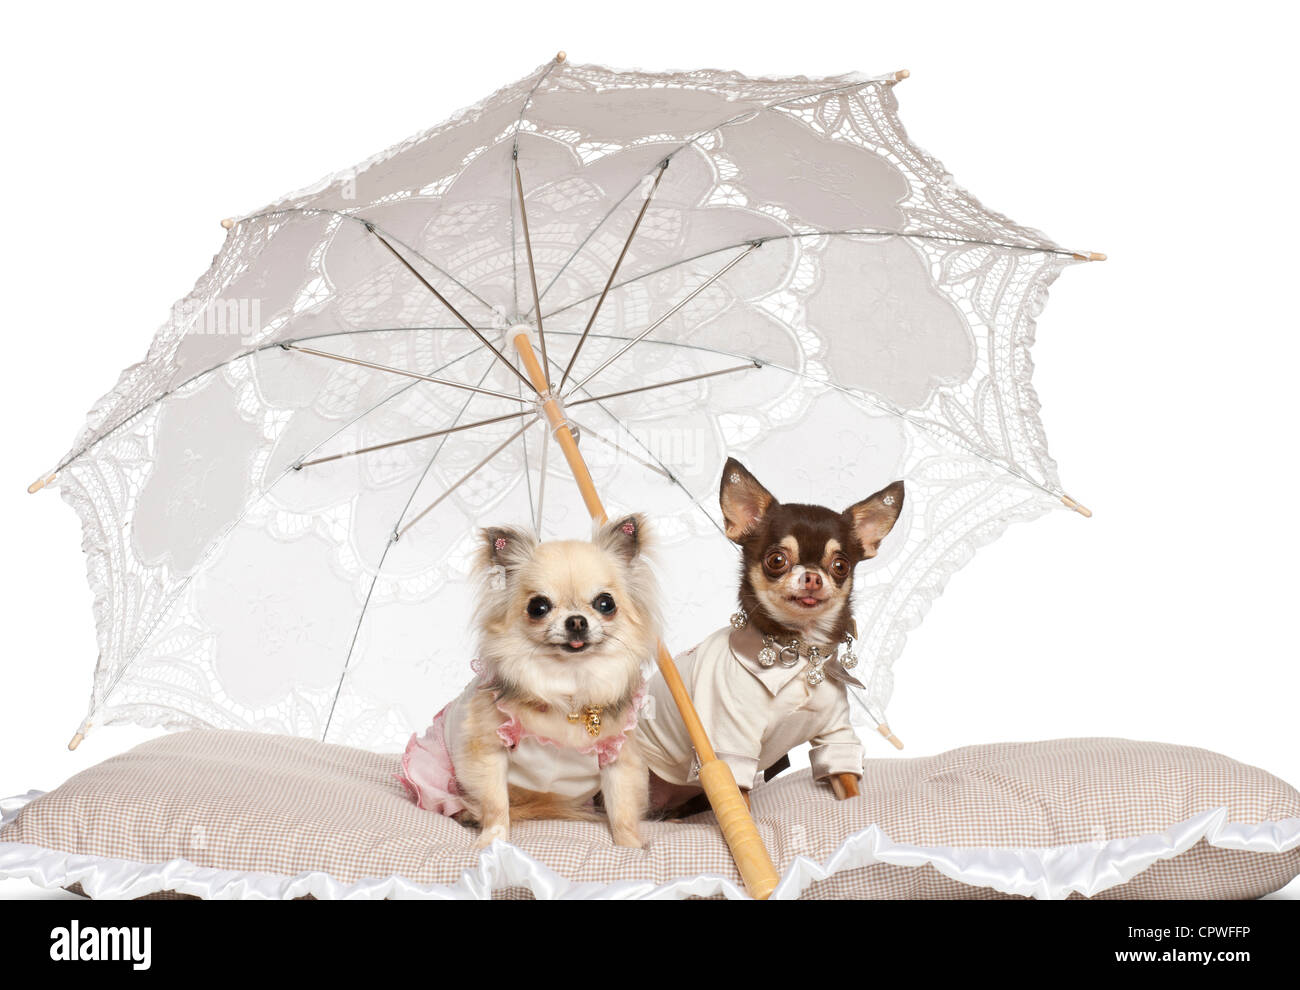 Chihuahuas, 2 and 4 years old, sitting under parasol in front of white background - Stock Image